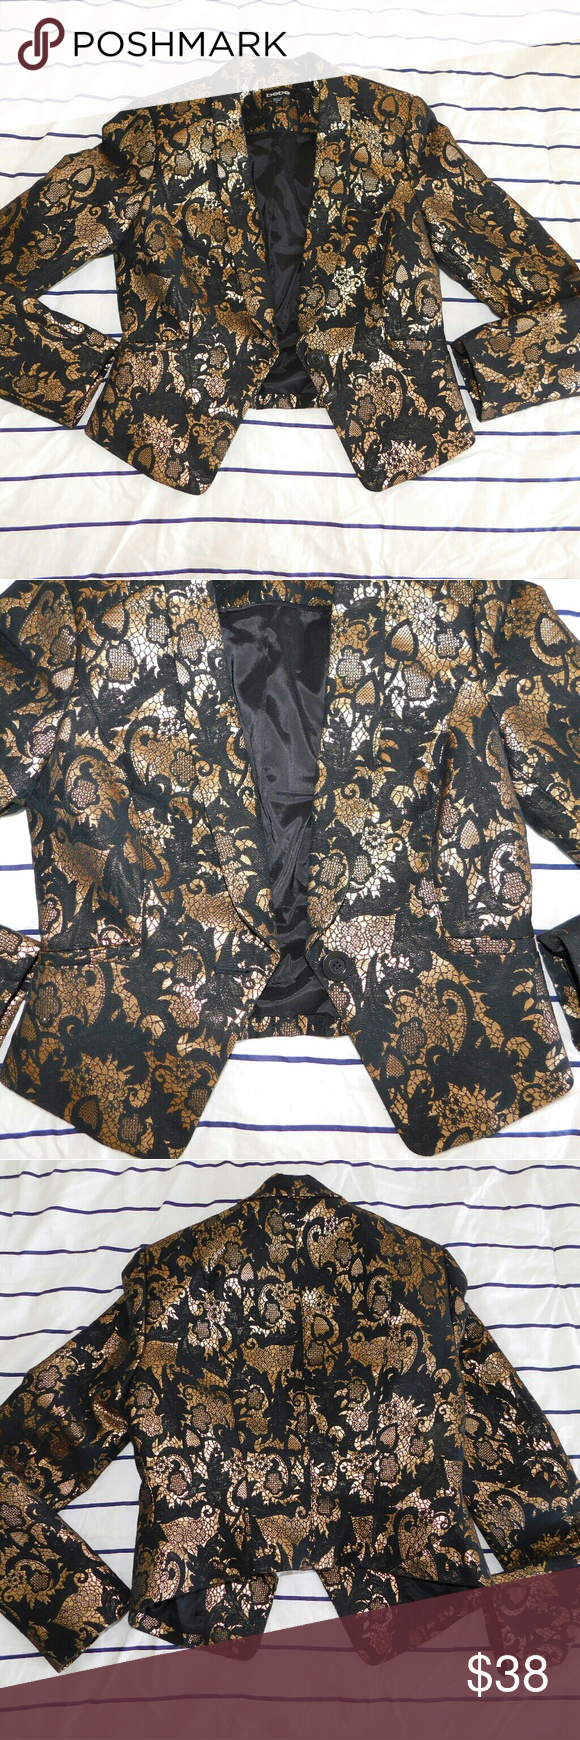 BEBE Black&Gold Jacquard Cropped High-Low Blazer In great conditon! Only minor flaw is the deodorant stains on the lining (see last image). But that can be easily removed when dry cleaned. 53% cotton and 47% polyester. bebe Jackets & Coats Blazers